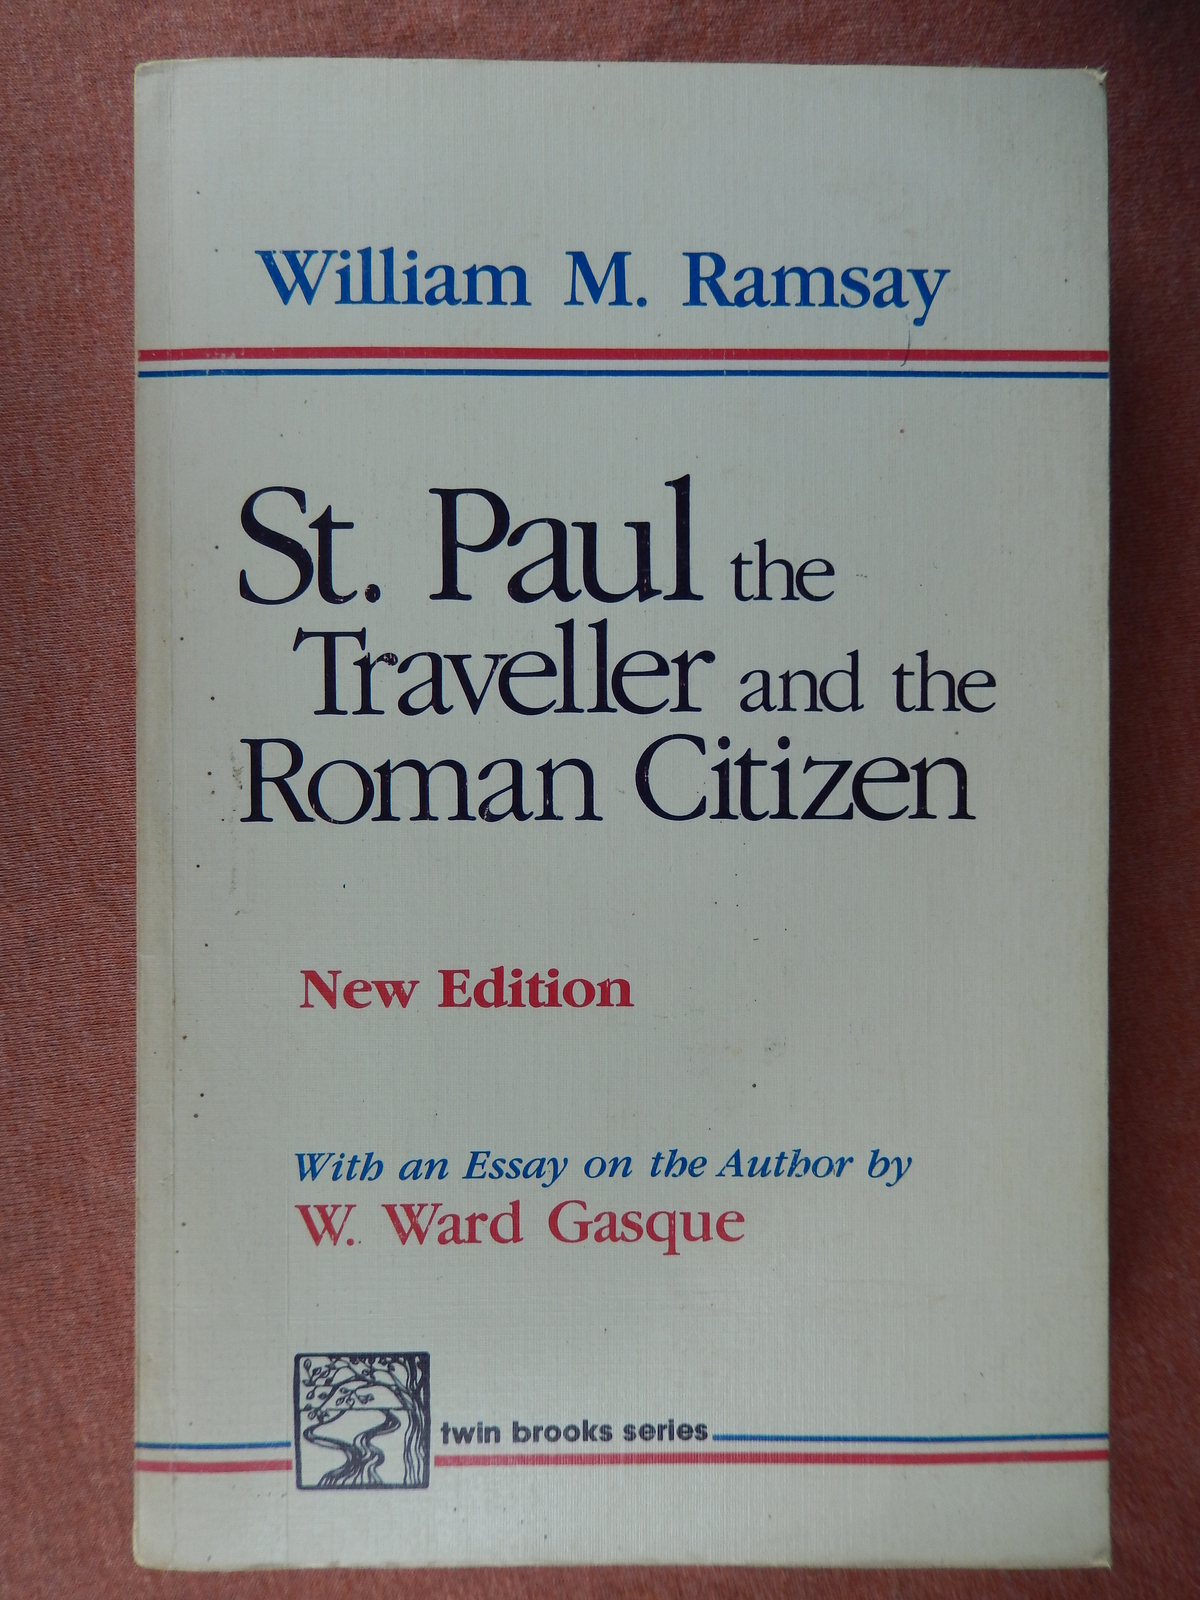 St. Paul the Traveller and the Roman Citizen William R. Ramsay 1982